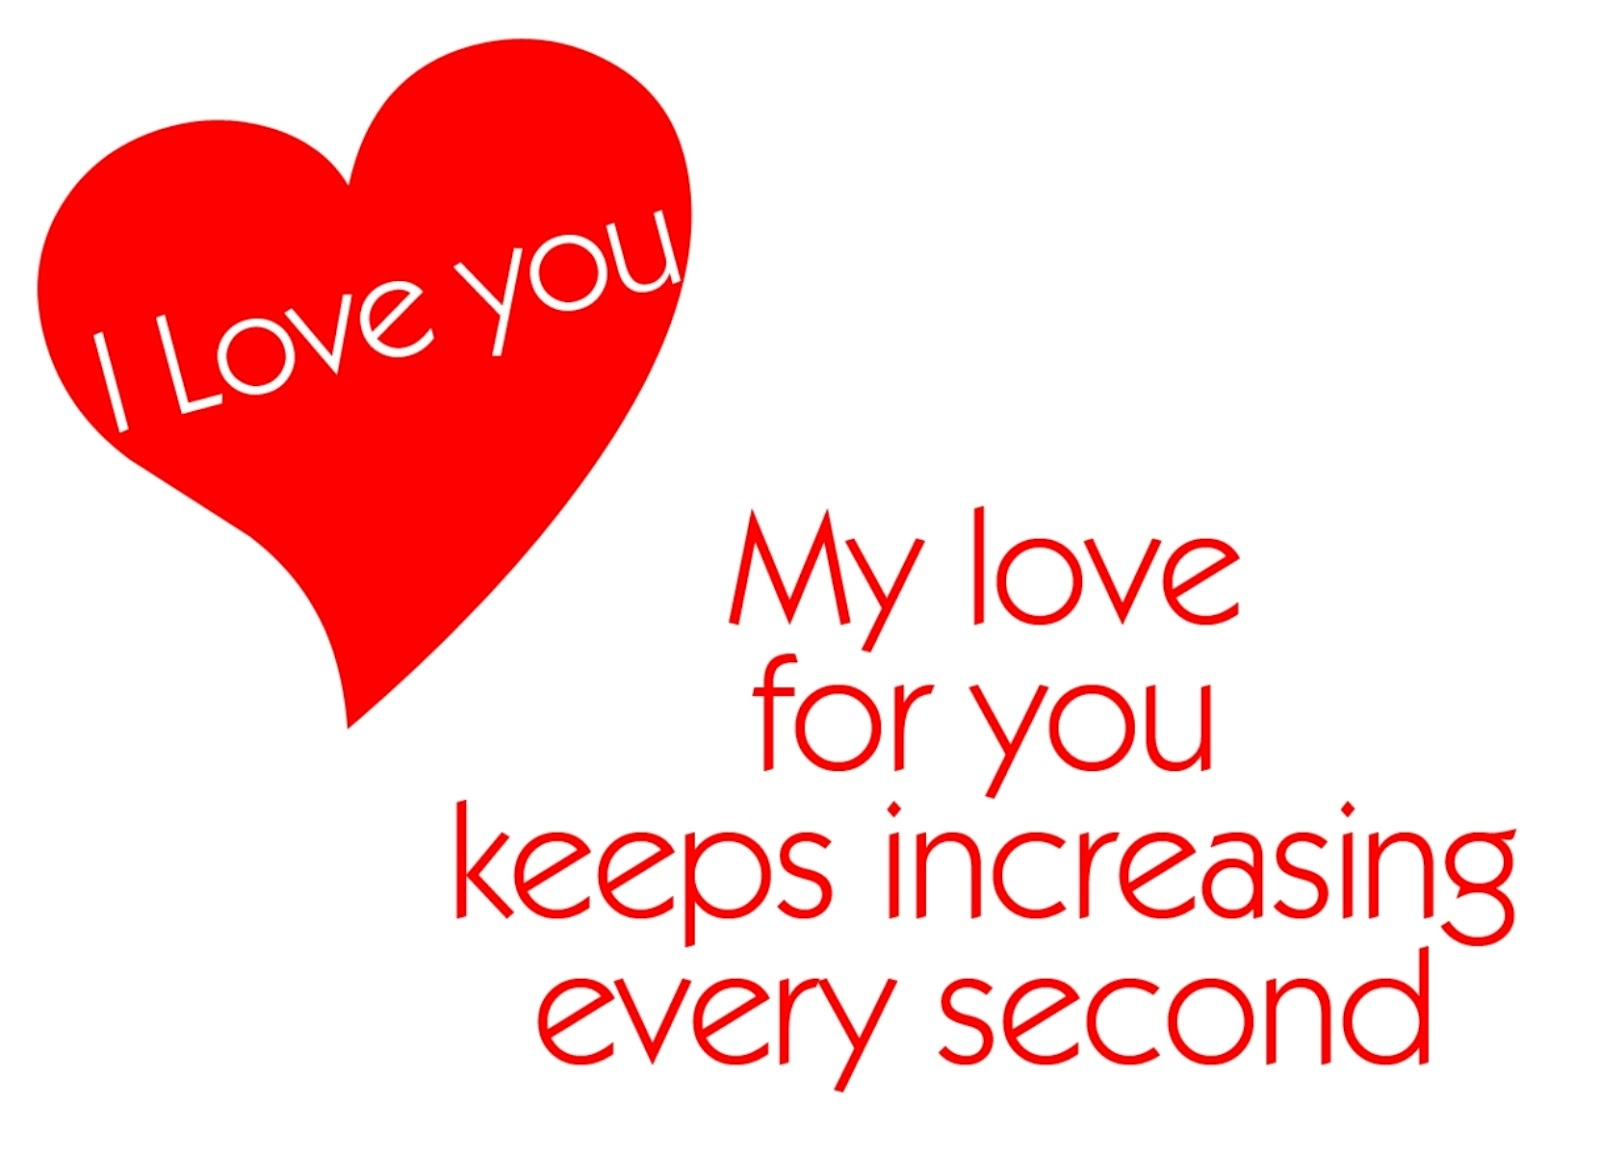 I Love You Quotes Hd : Love Quotes Wallpapers Free Download hd Wide Range